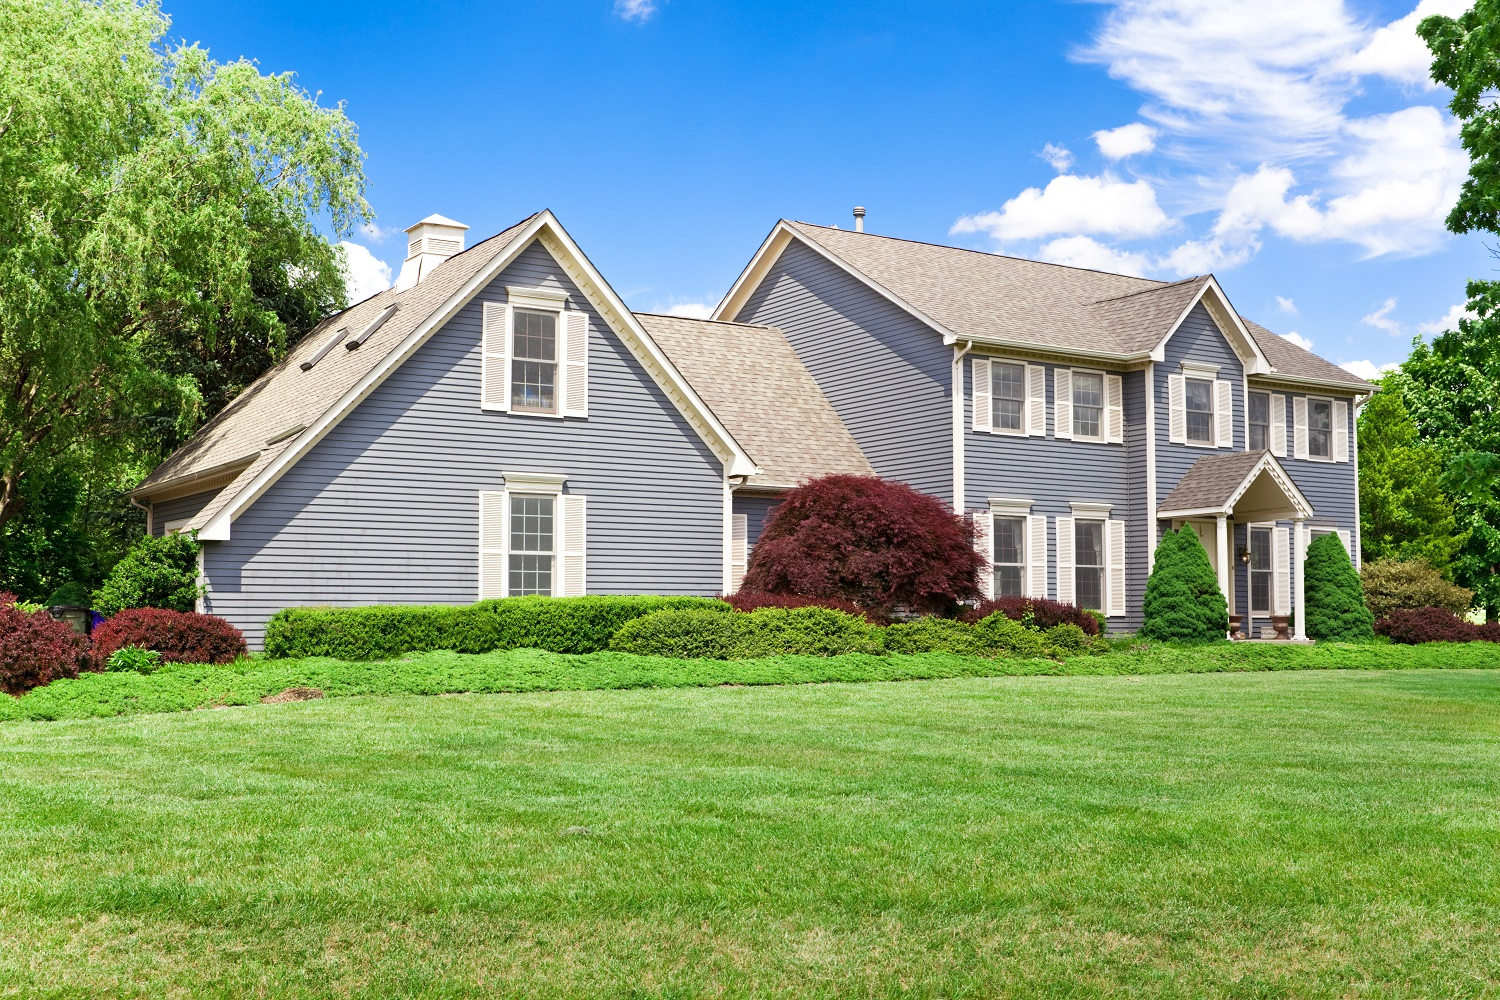 7 Signs You Need New Exterior Paint on Your Home